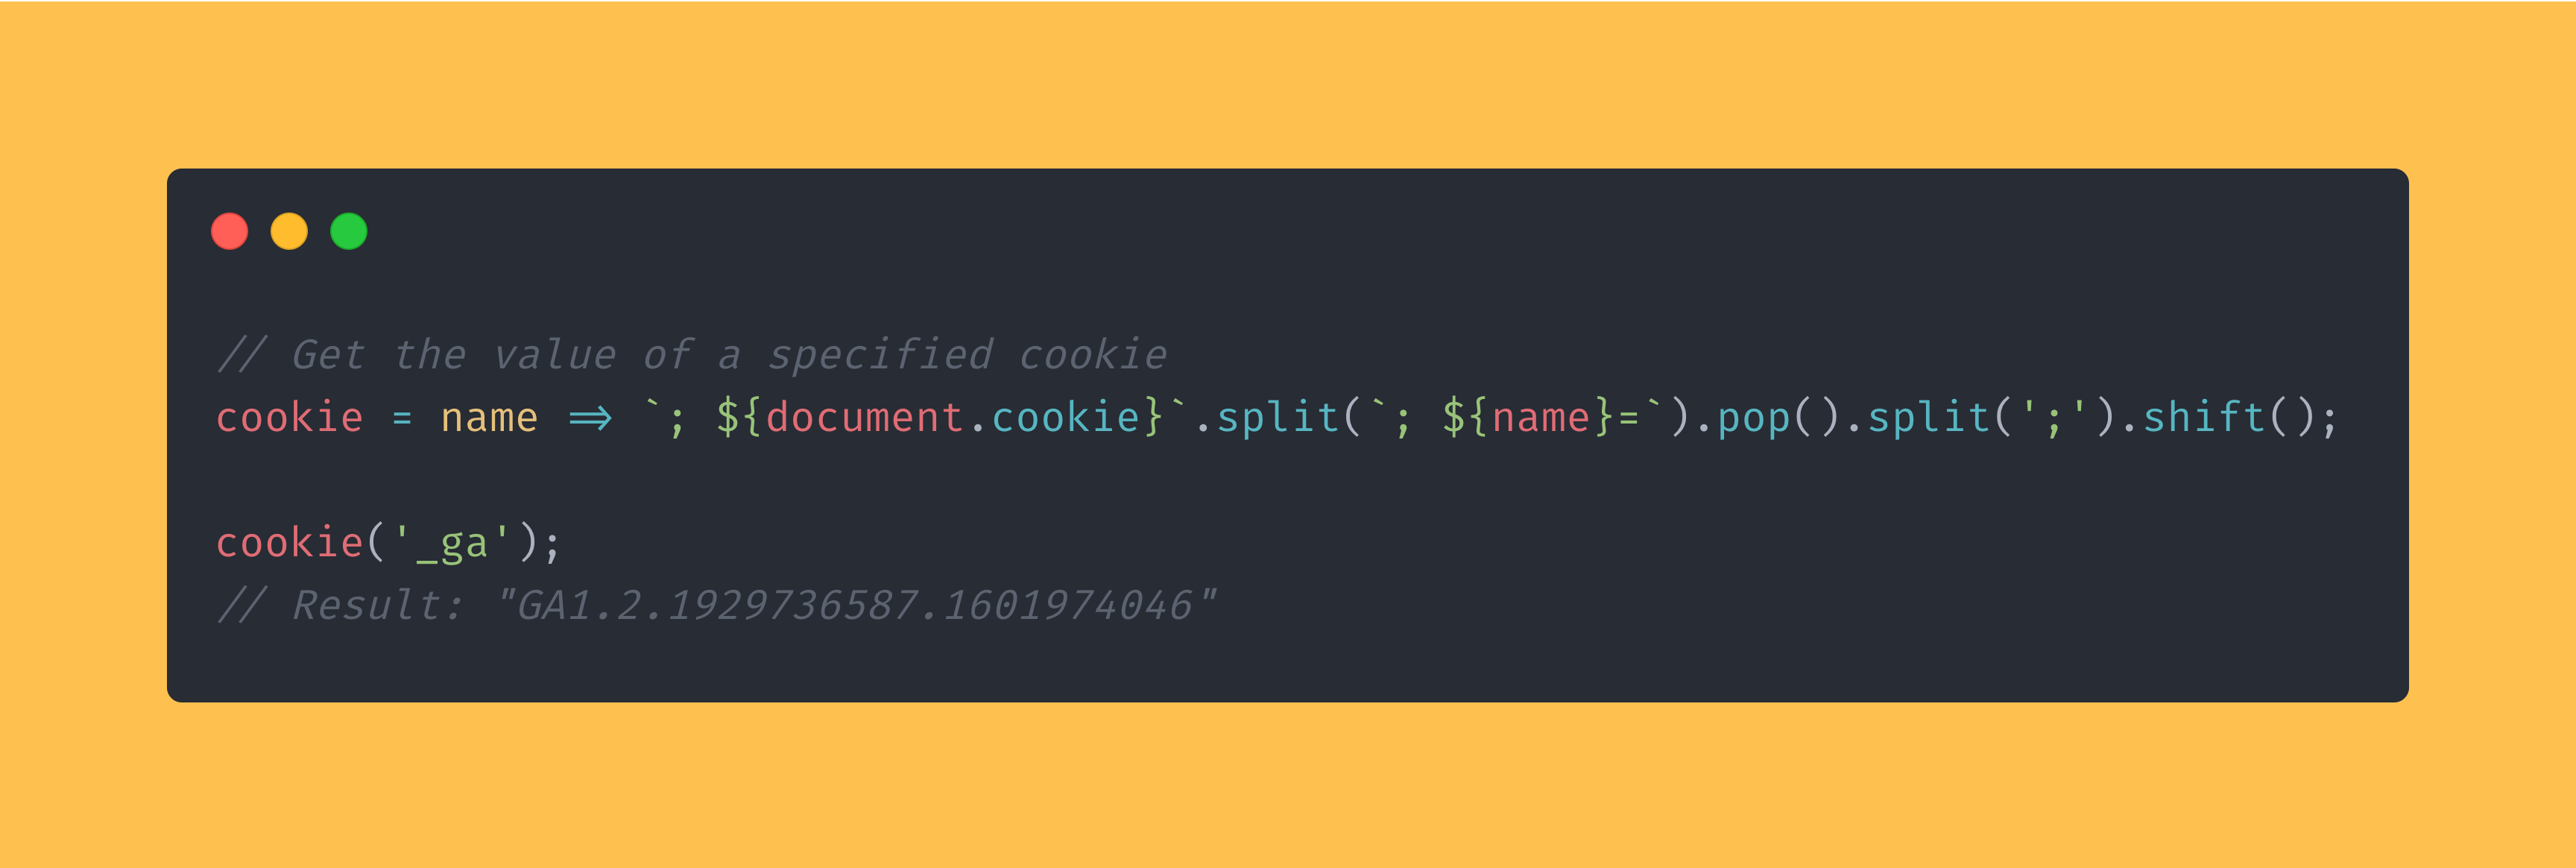 JavaScript function that reads the value of a specific cookie